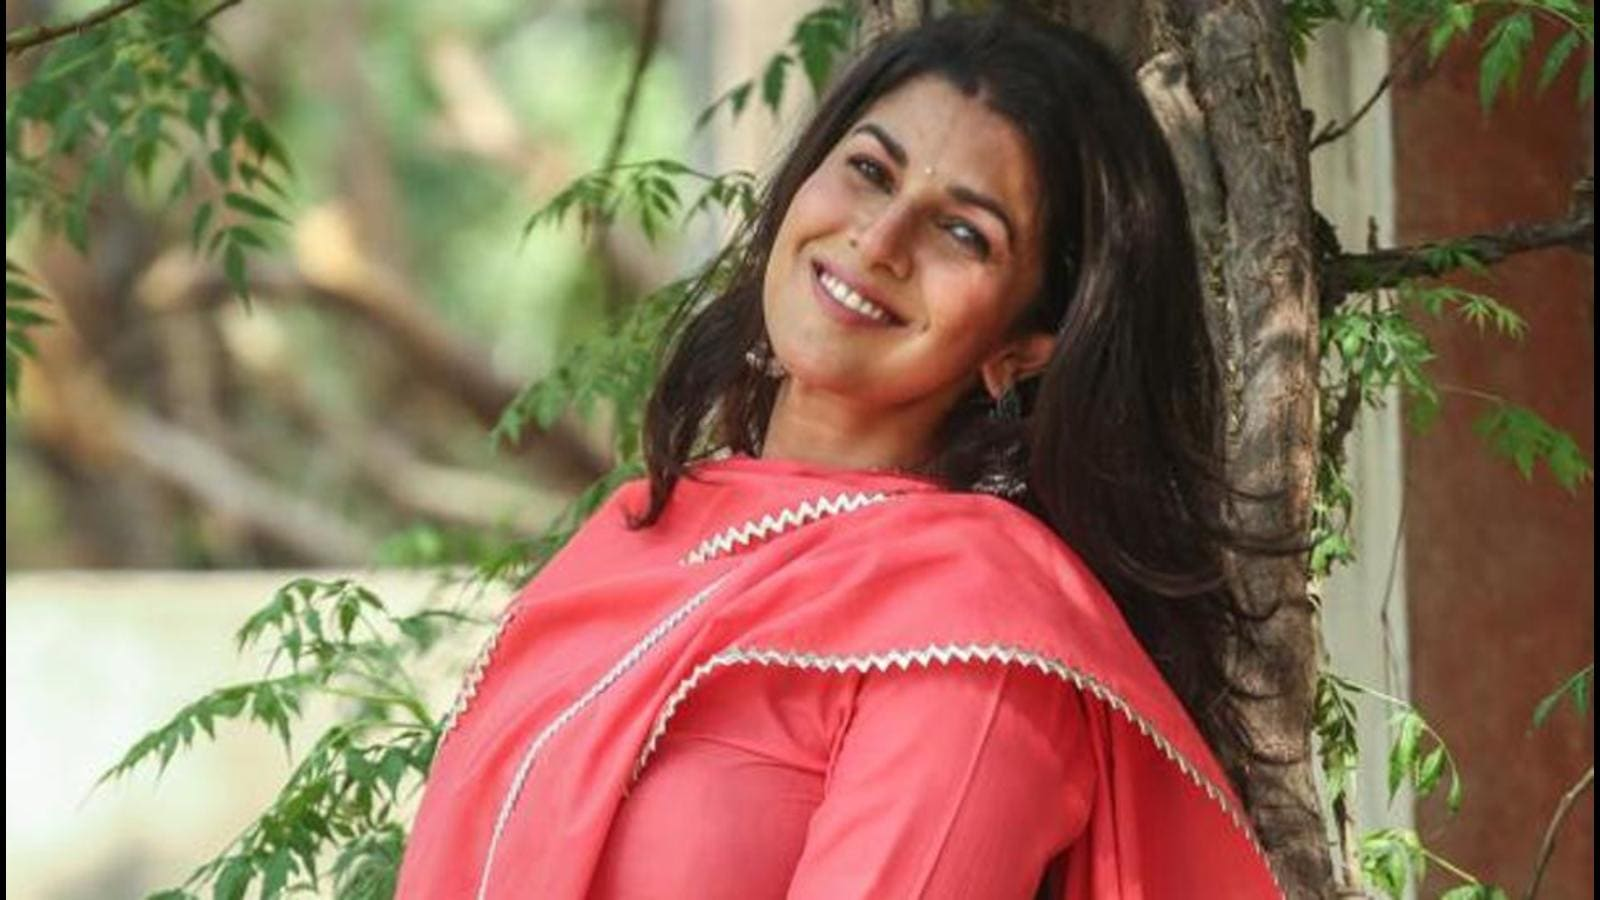 Happy Birthday Nimrat Kaur: On my birthdays, I do like to reconnect with my family - Hindustan Times